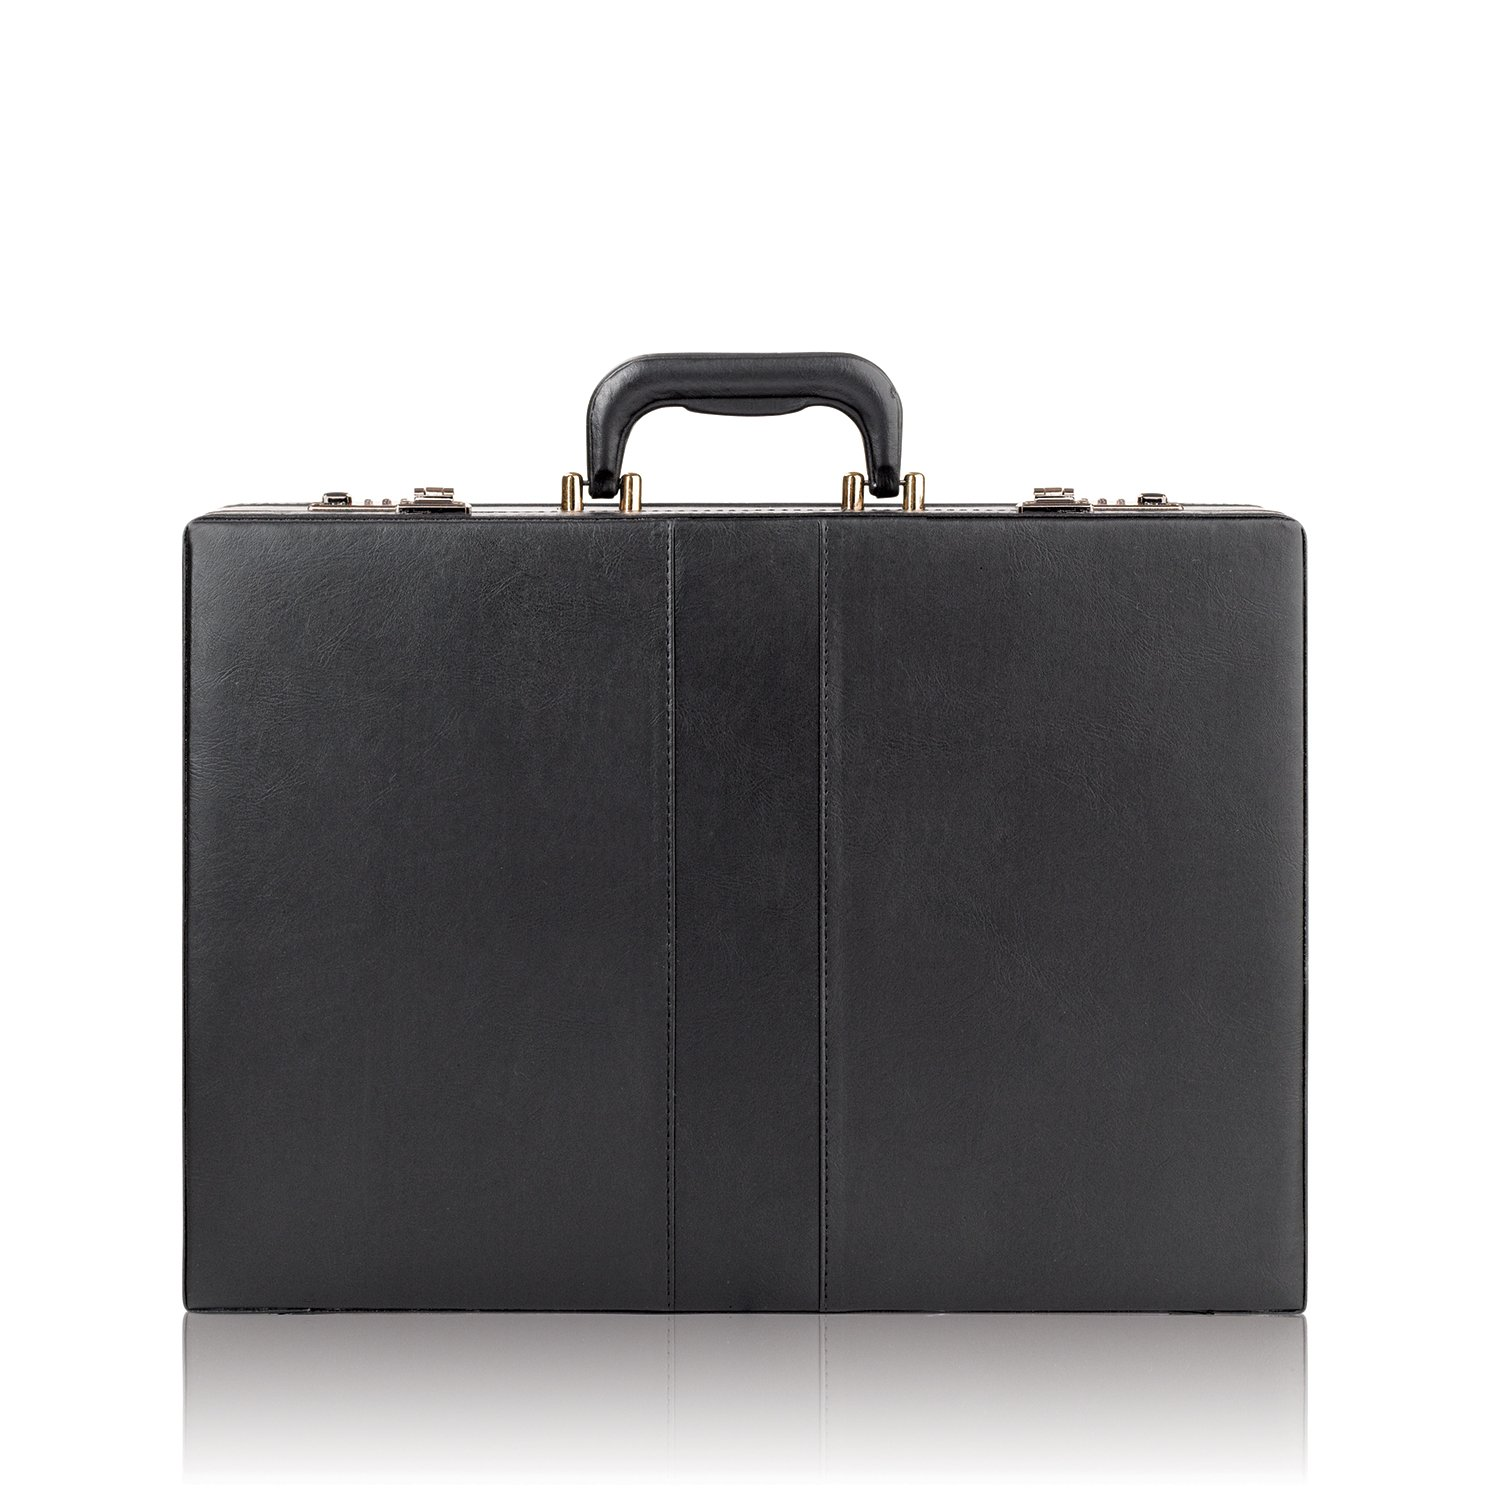 Solo Grand Central Attaché, Hard-sided with Combination Locks, Black K85-4U4